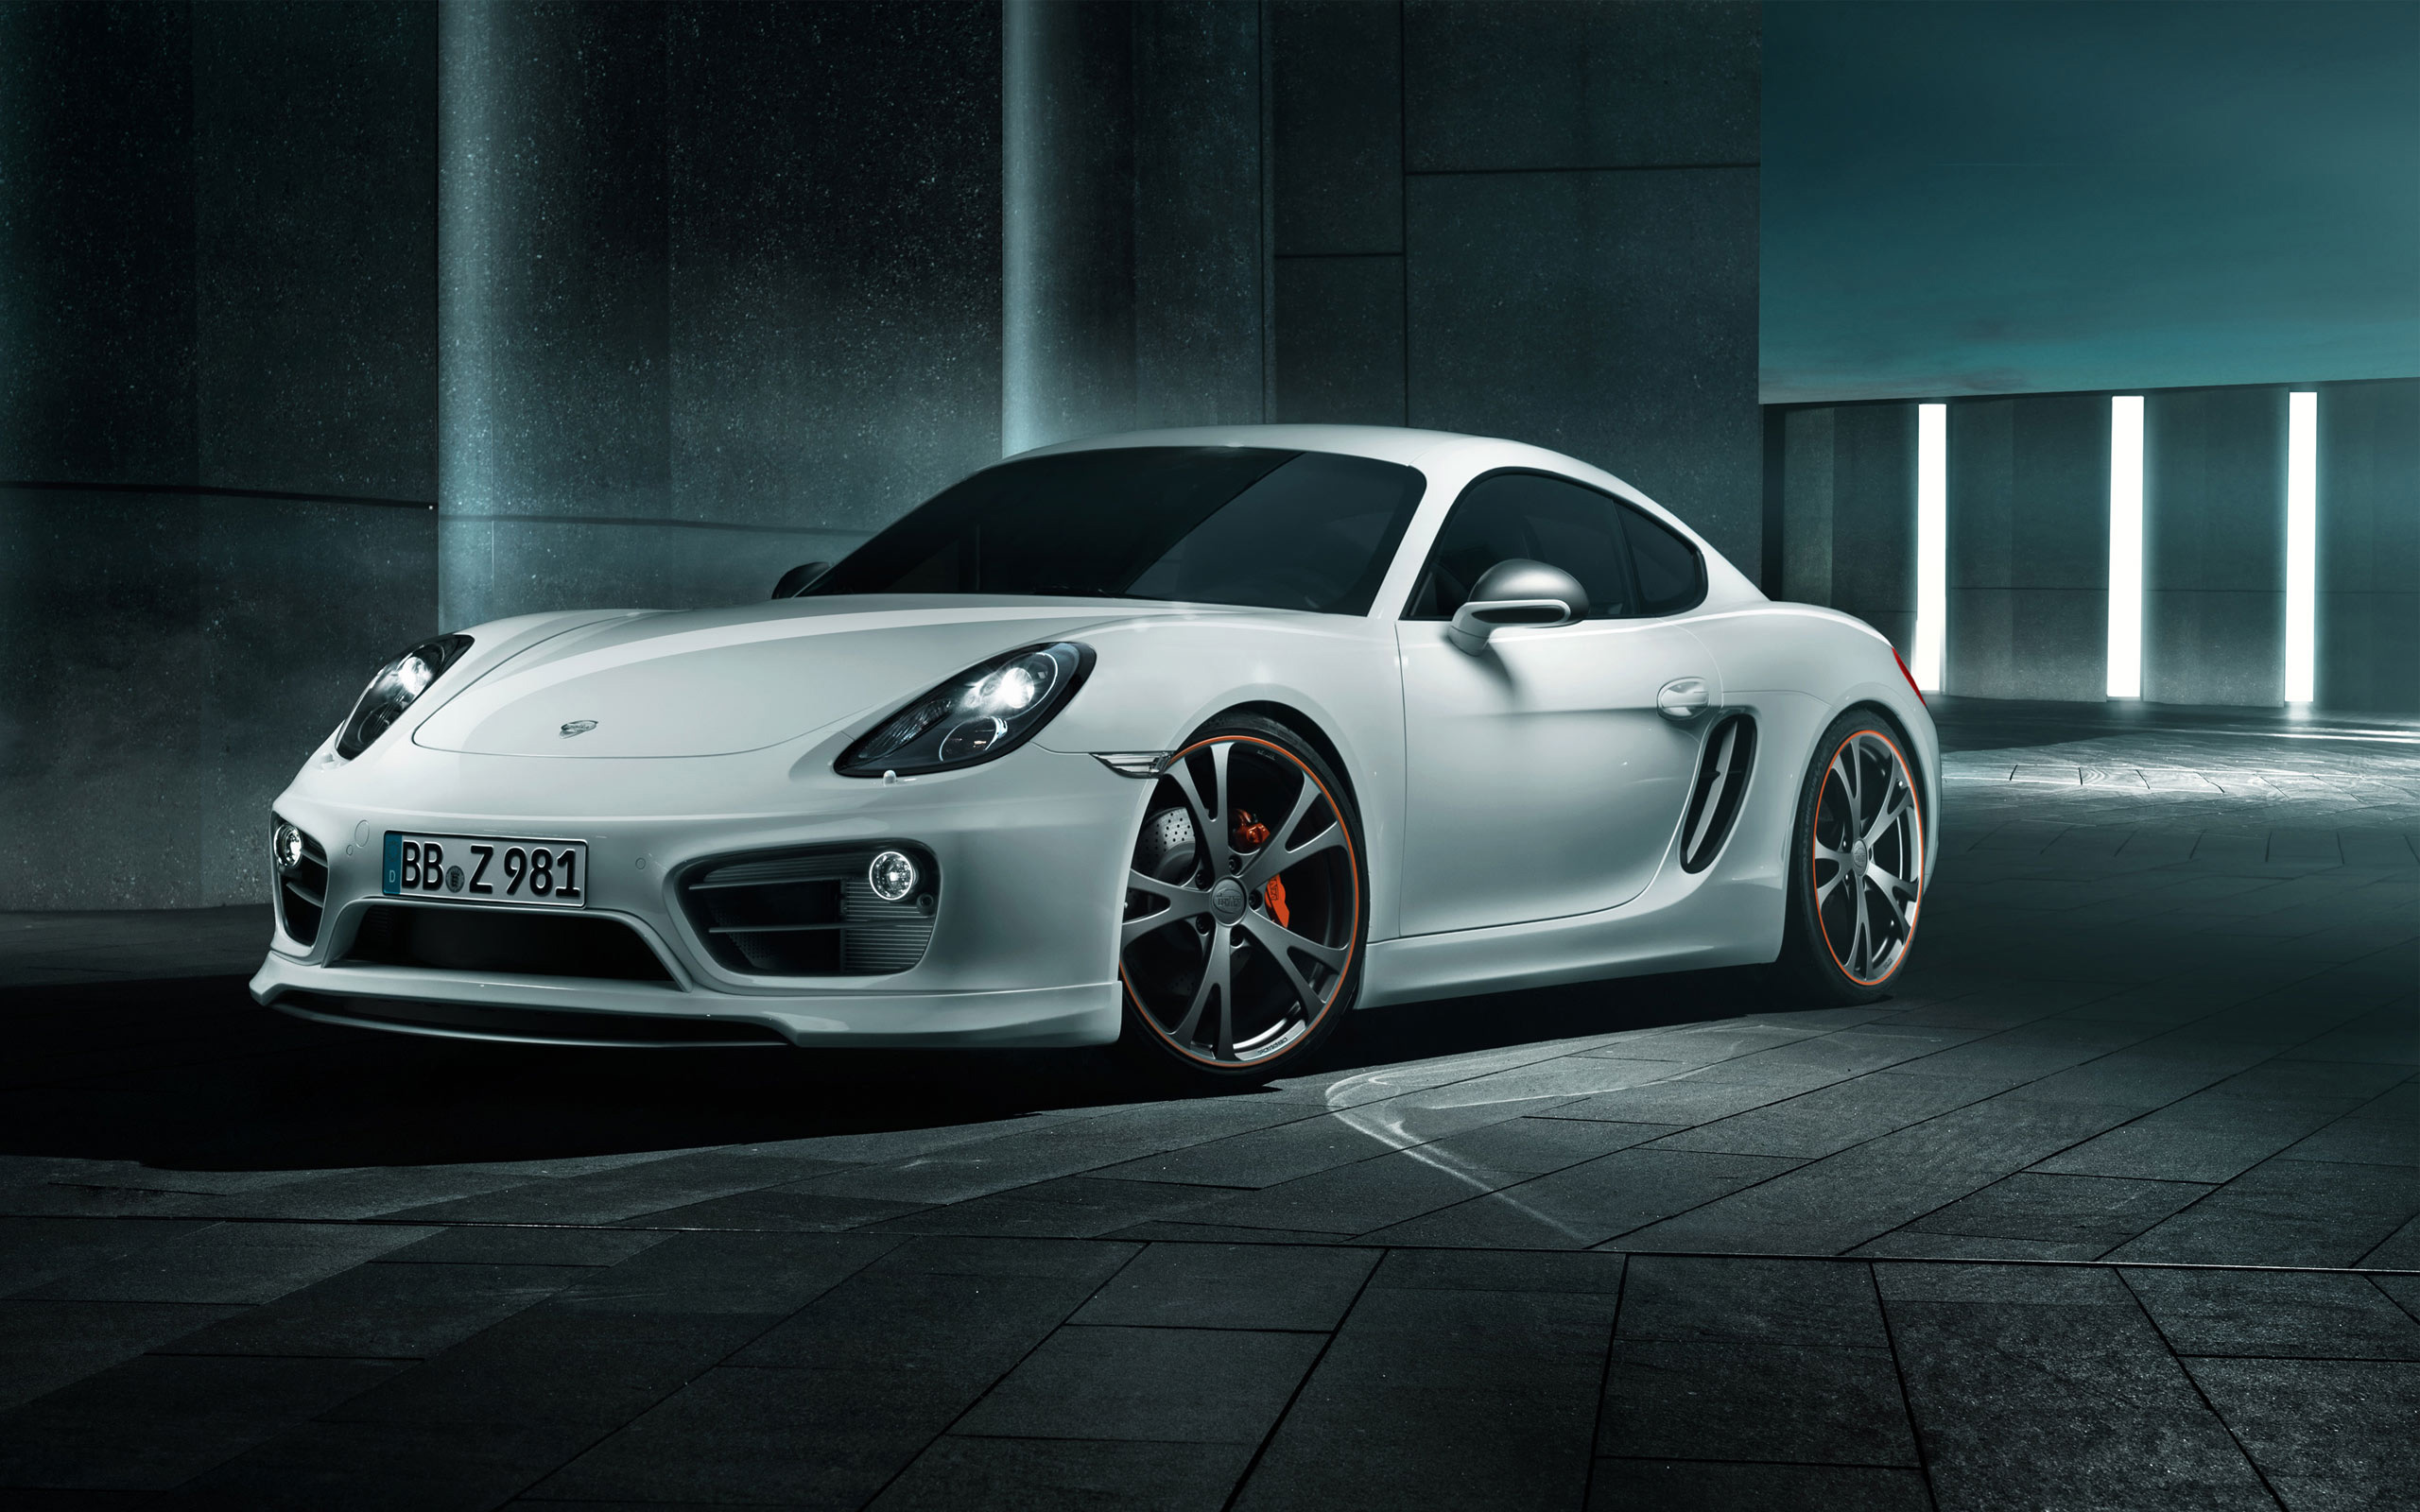 2560x1600 - Porsche Cayman Wallpapers 6